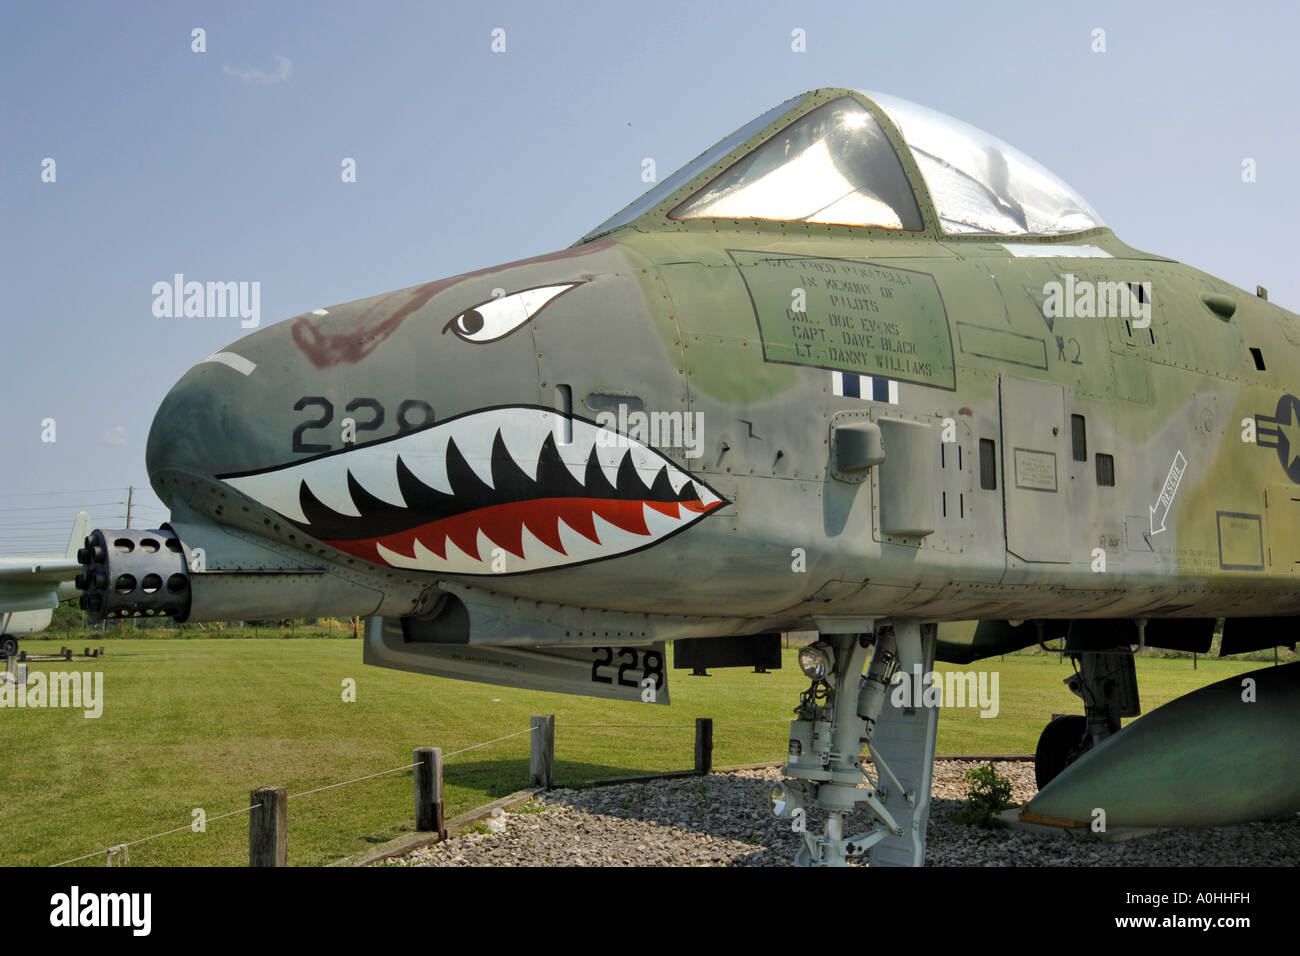 a10 warthog stock photos a10 warthog stock images page 2 alamy